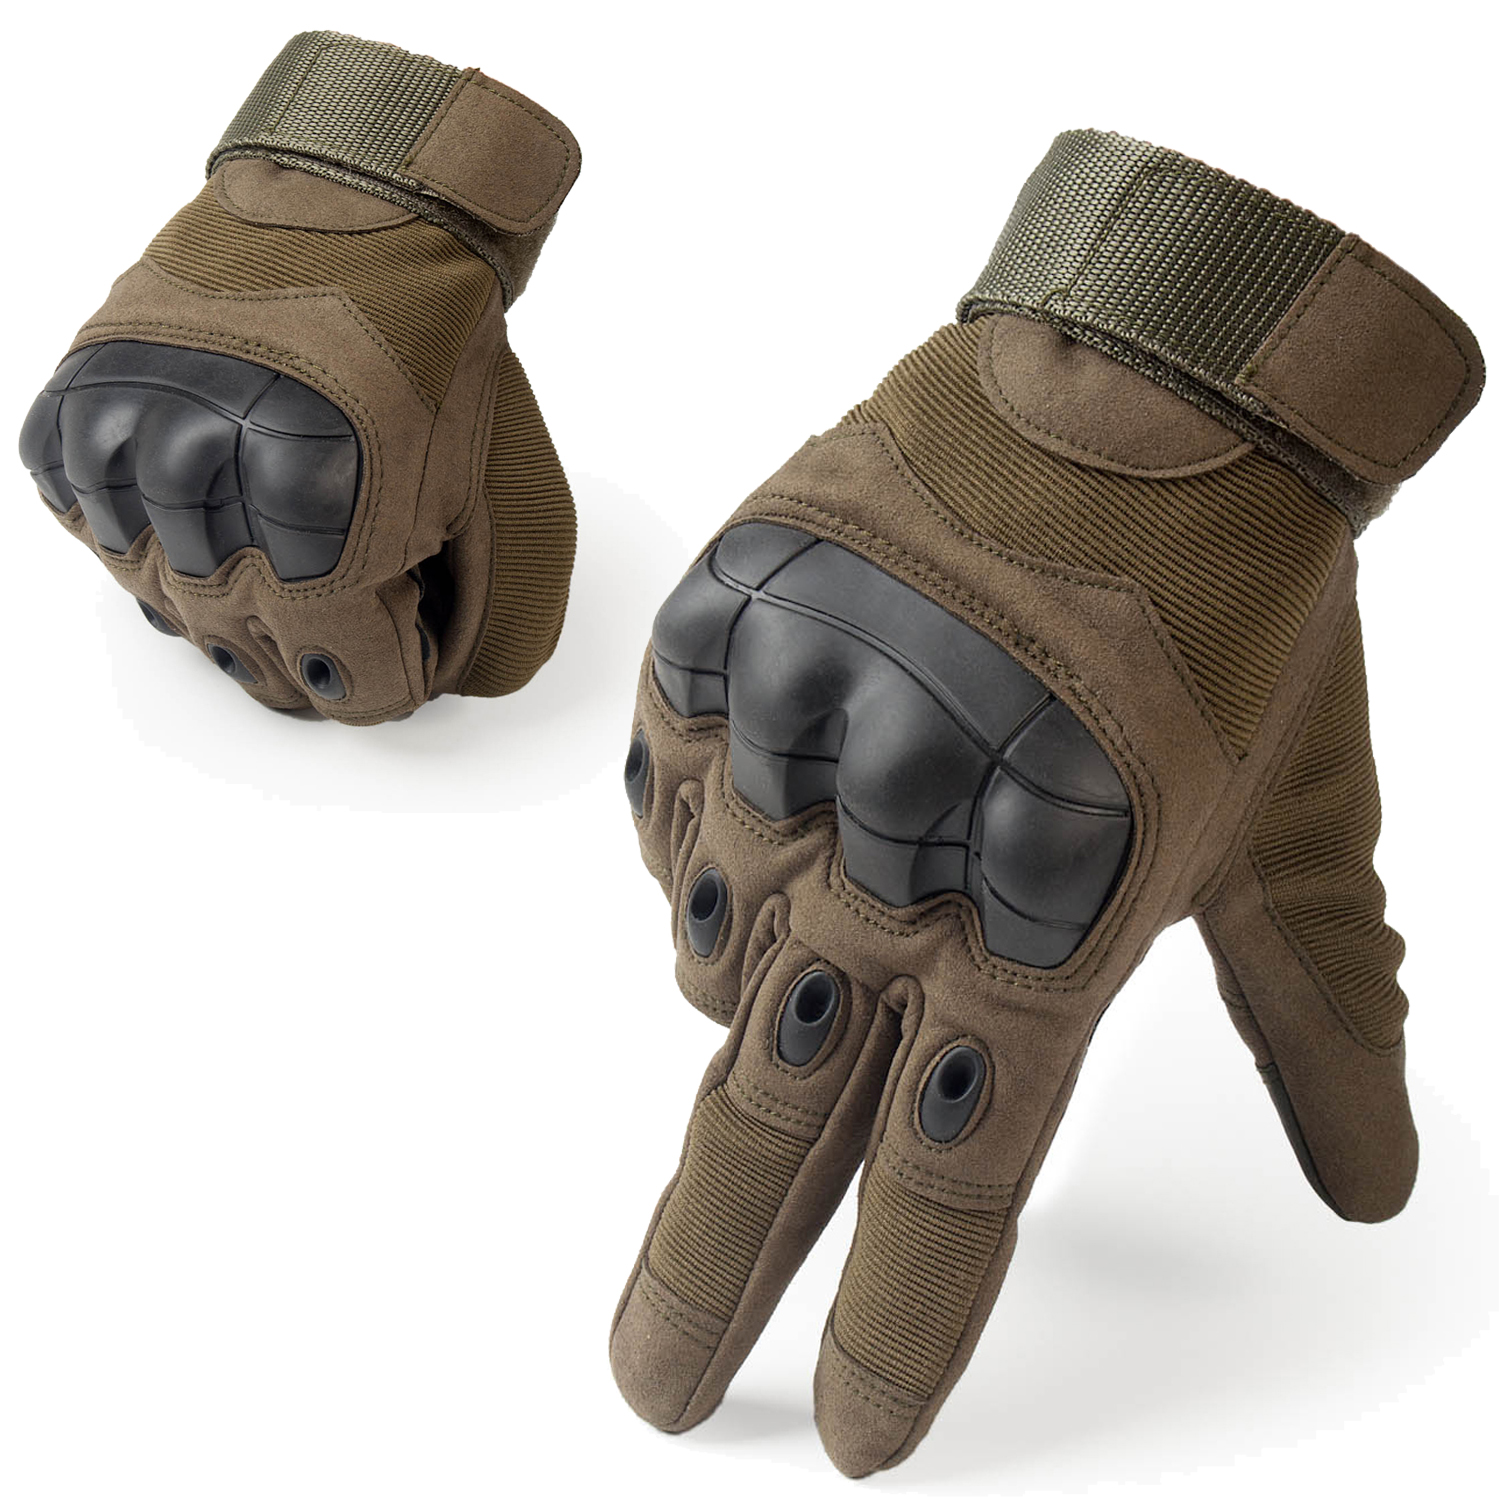 Mens novelty gloves - Novelty Rubber Gloves